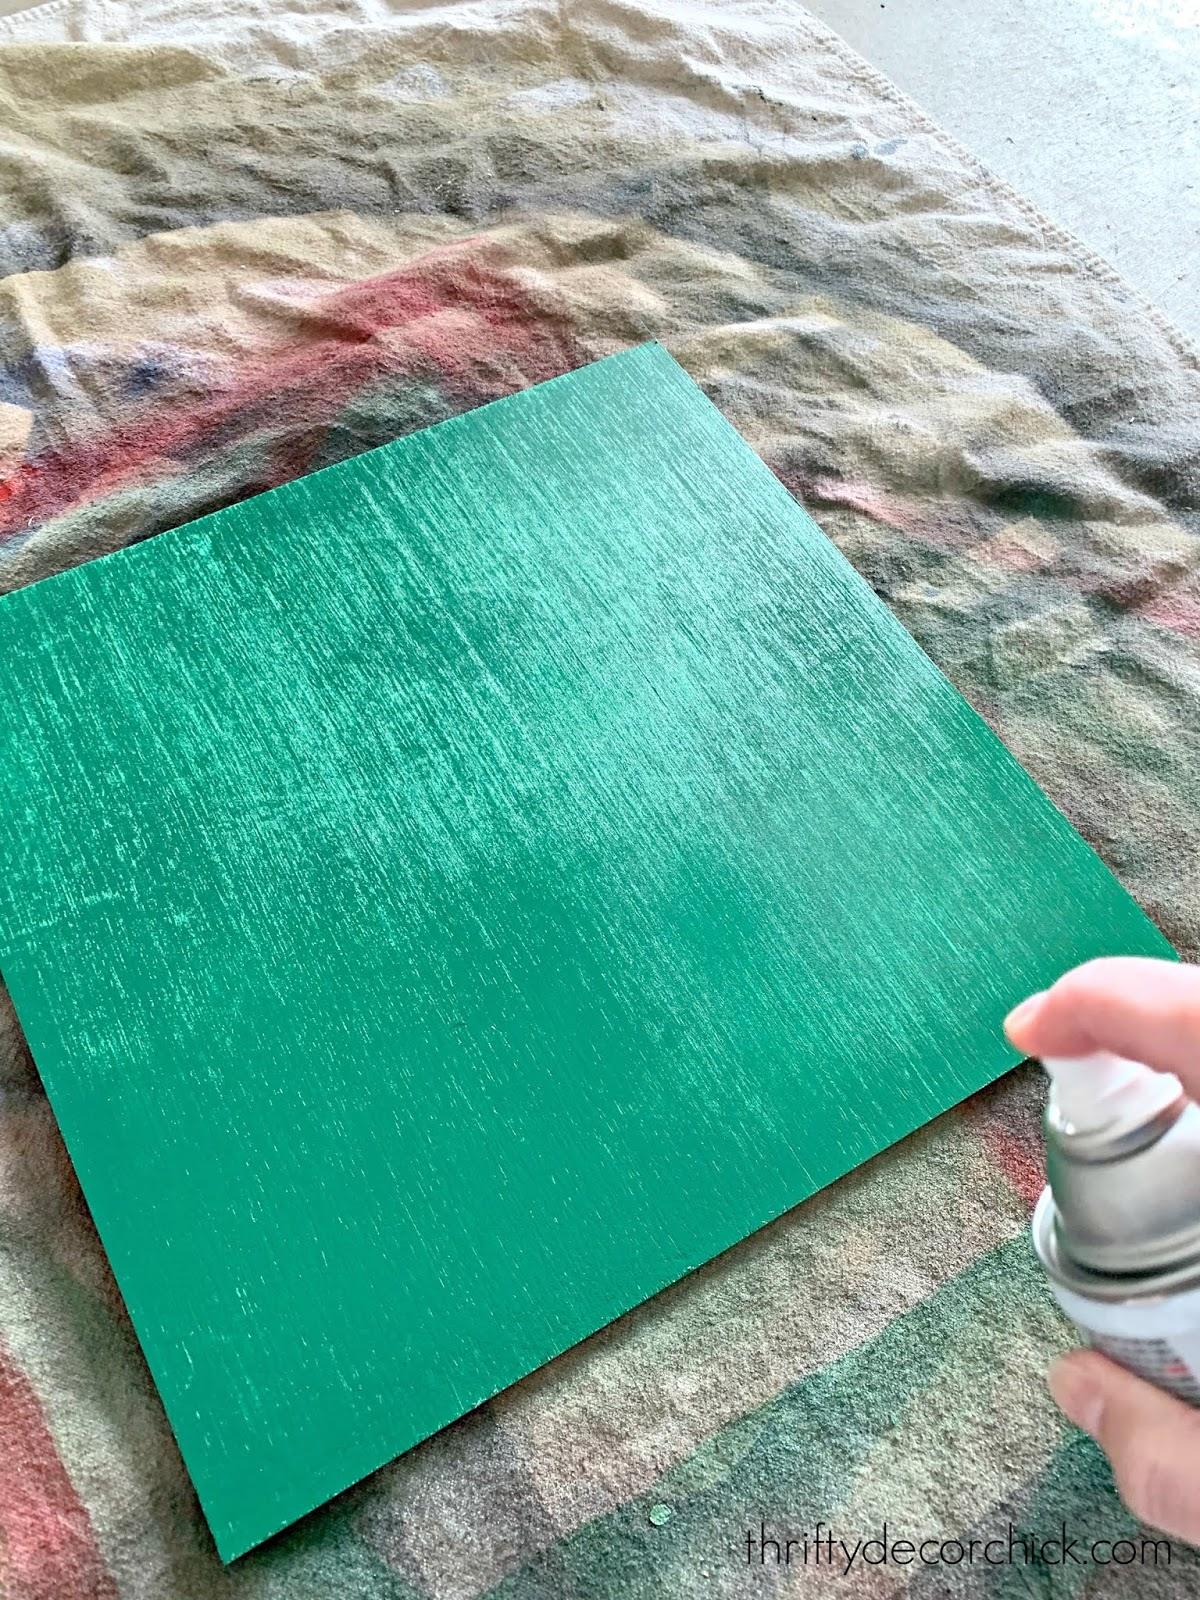 Spray paint tips to avoid issues